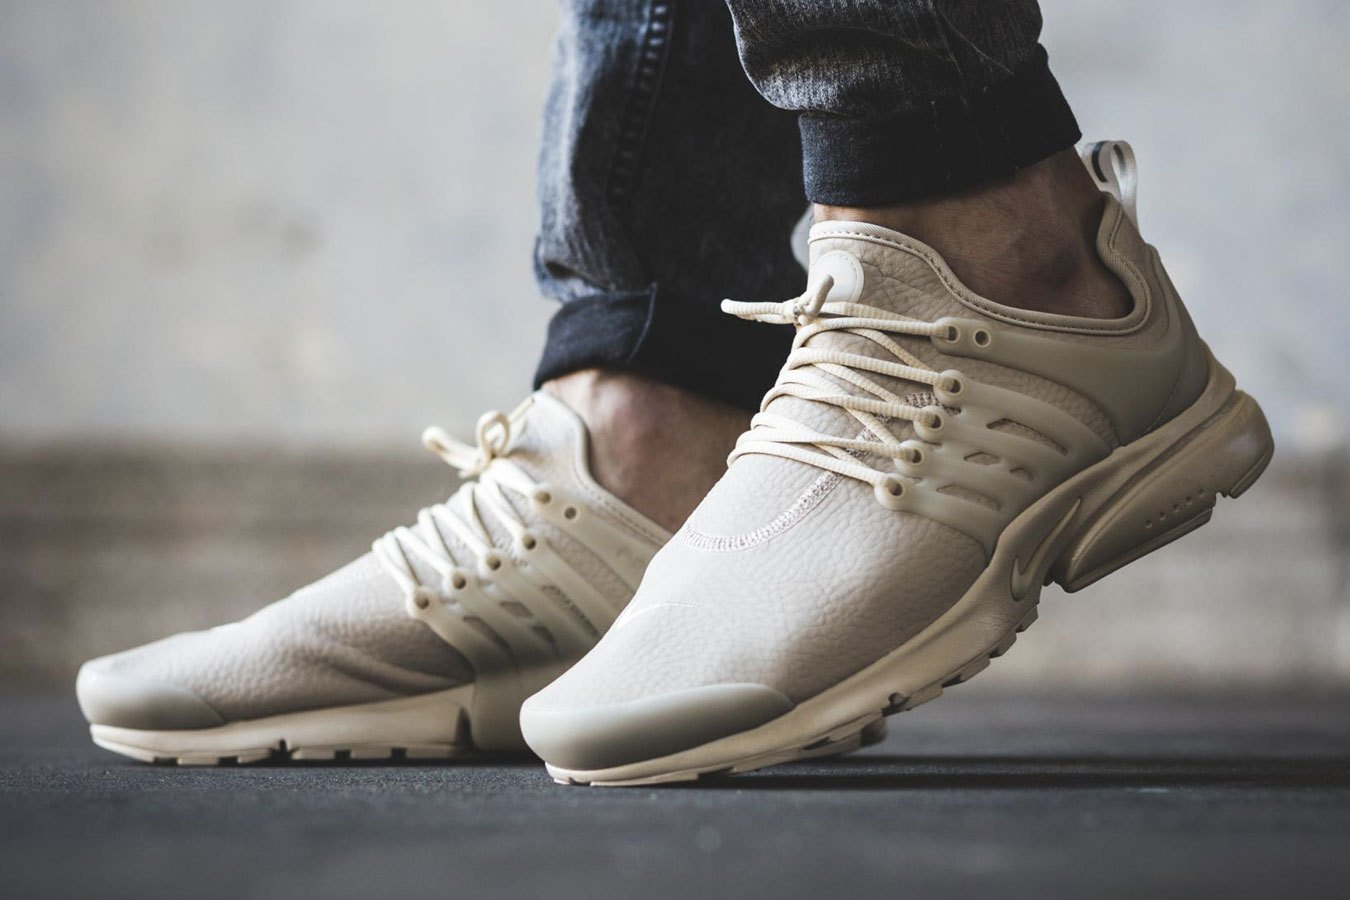 Les Nike Air Presto version « chair »